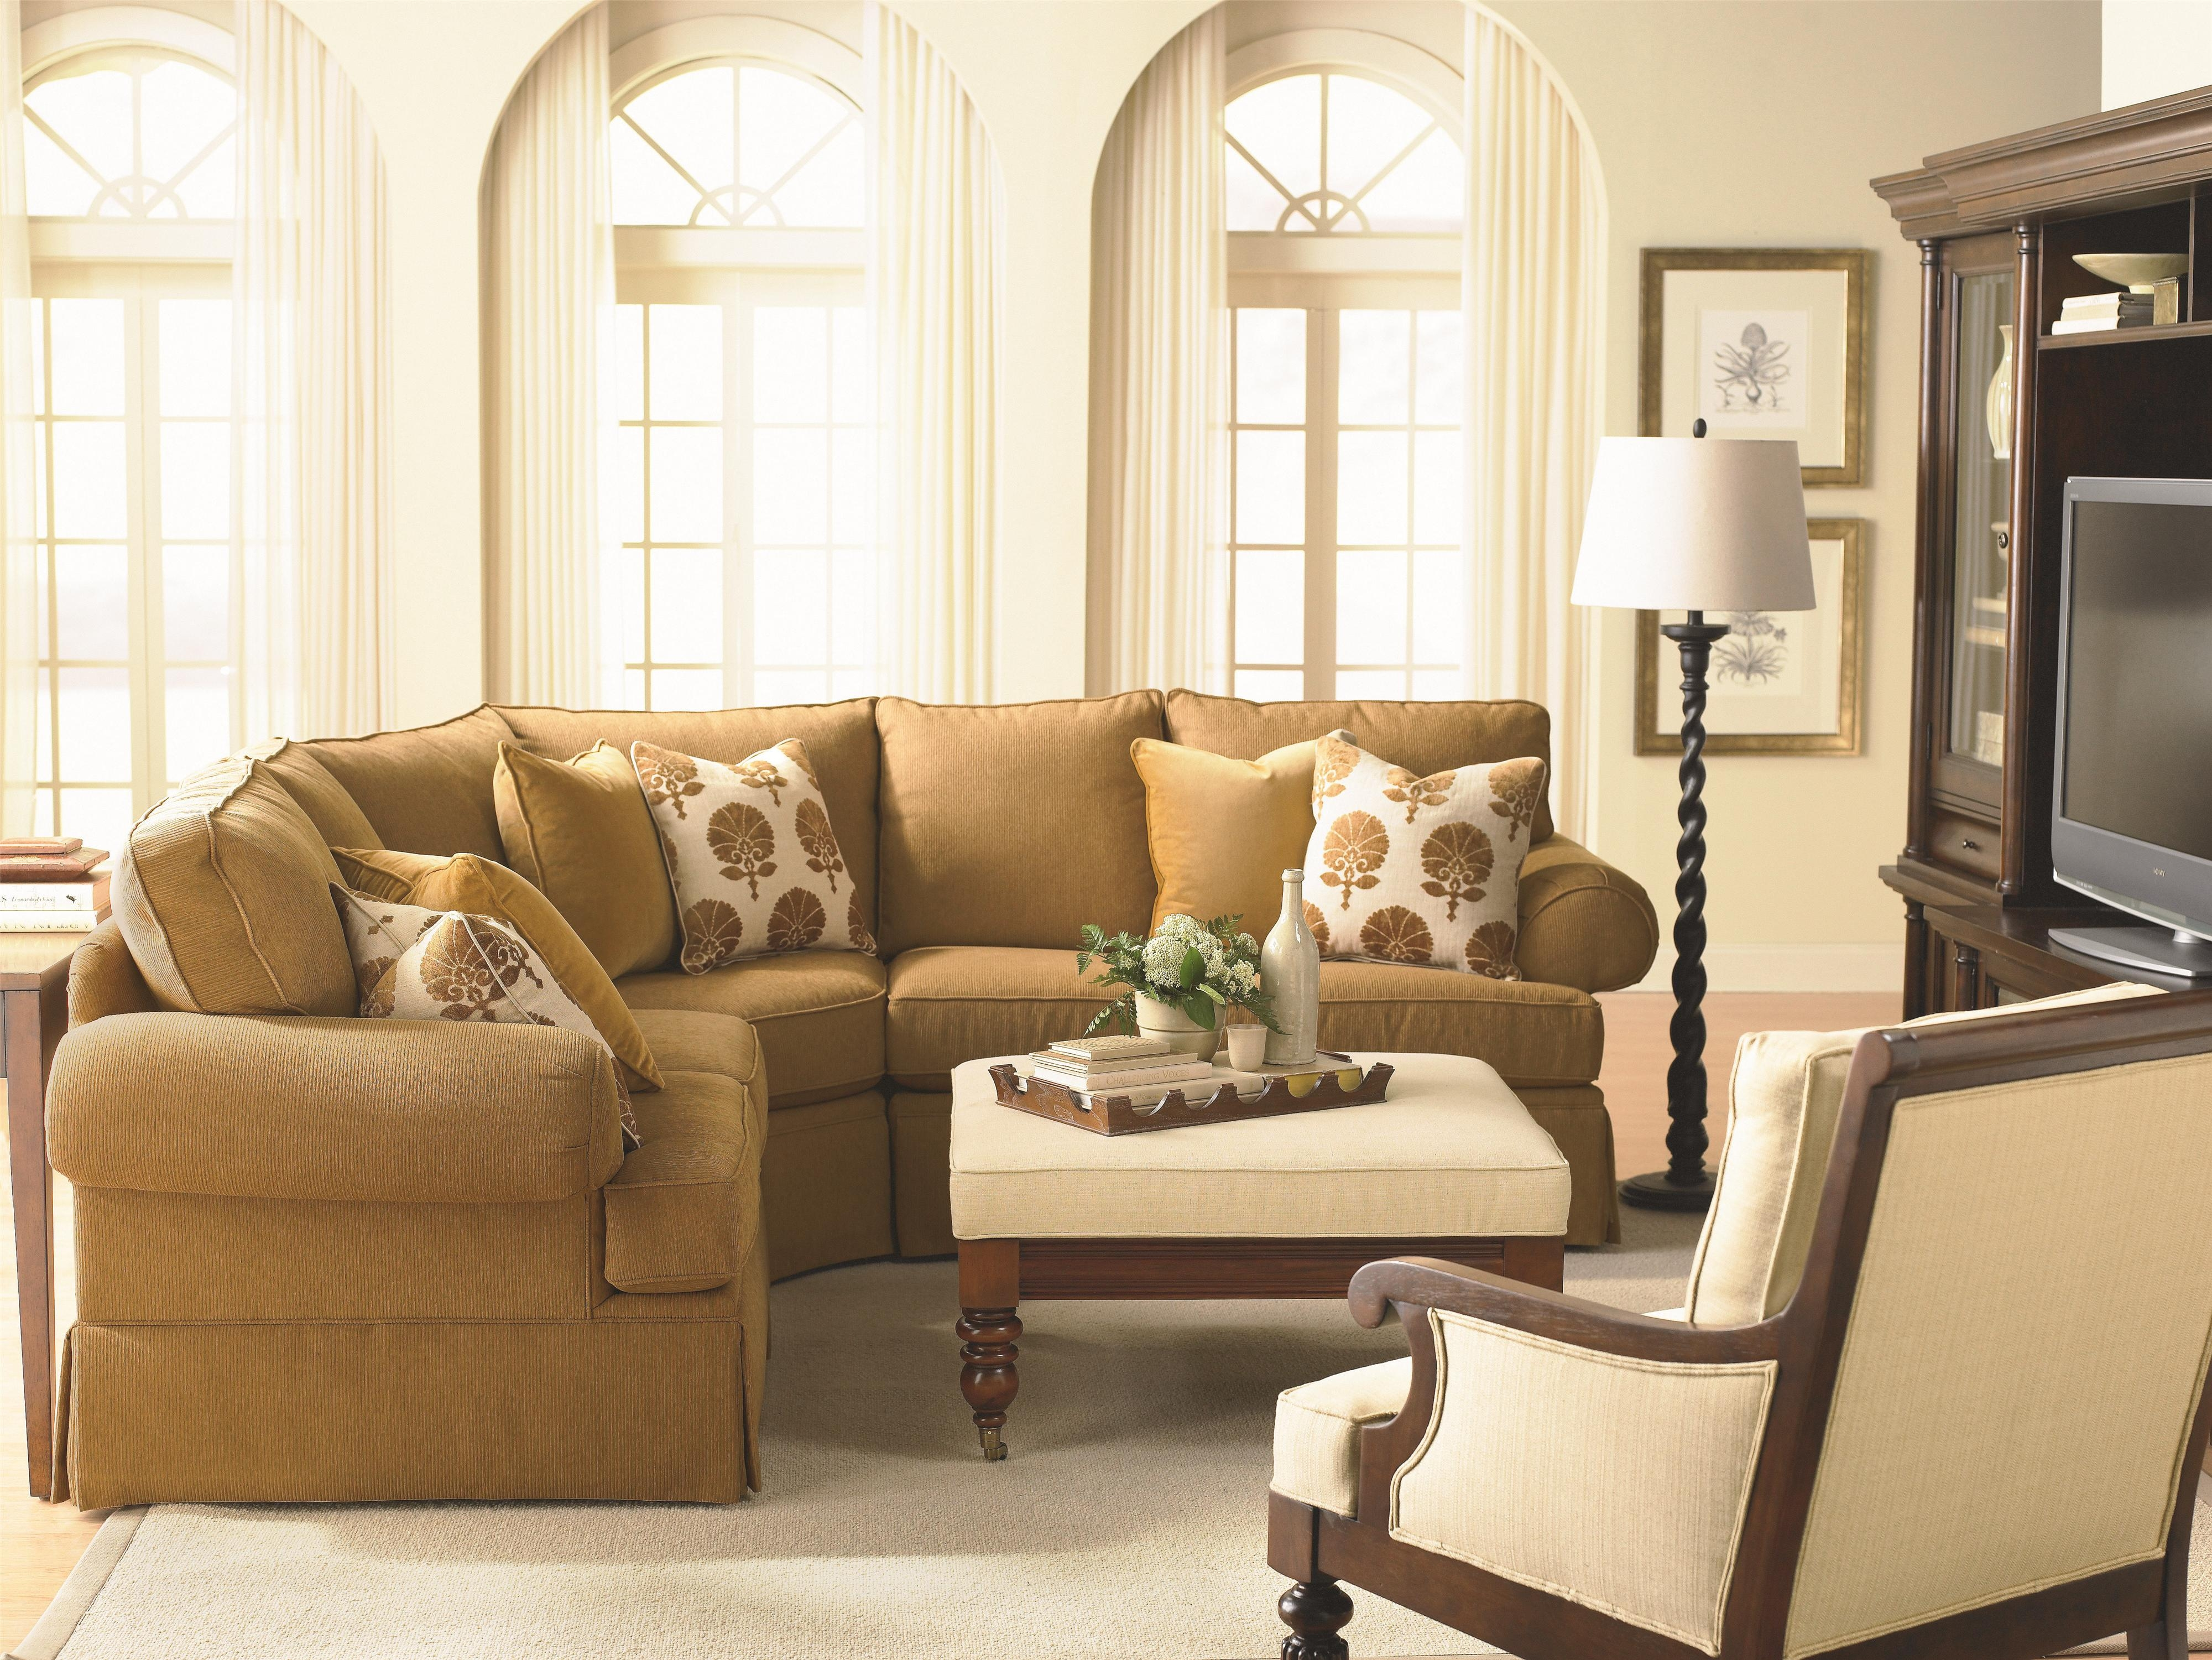 Bcustomizableb 2 Pc Sectional With Laf Chaise Panel Arms And For Bassett Sectional Sofa (Image 6 of 15)